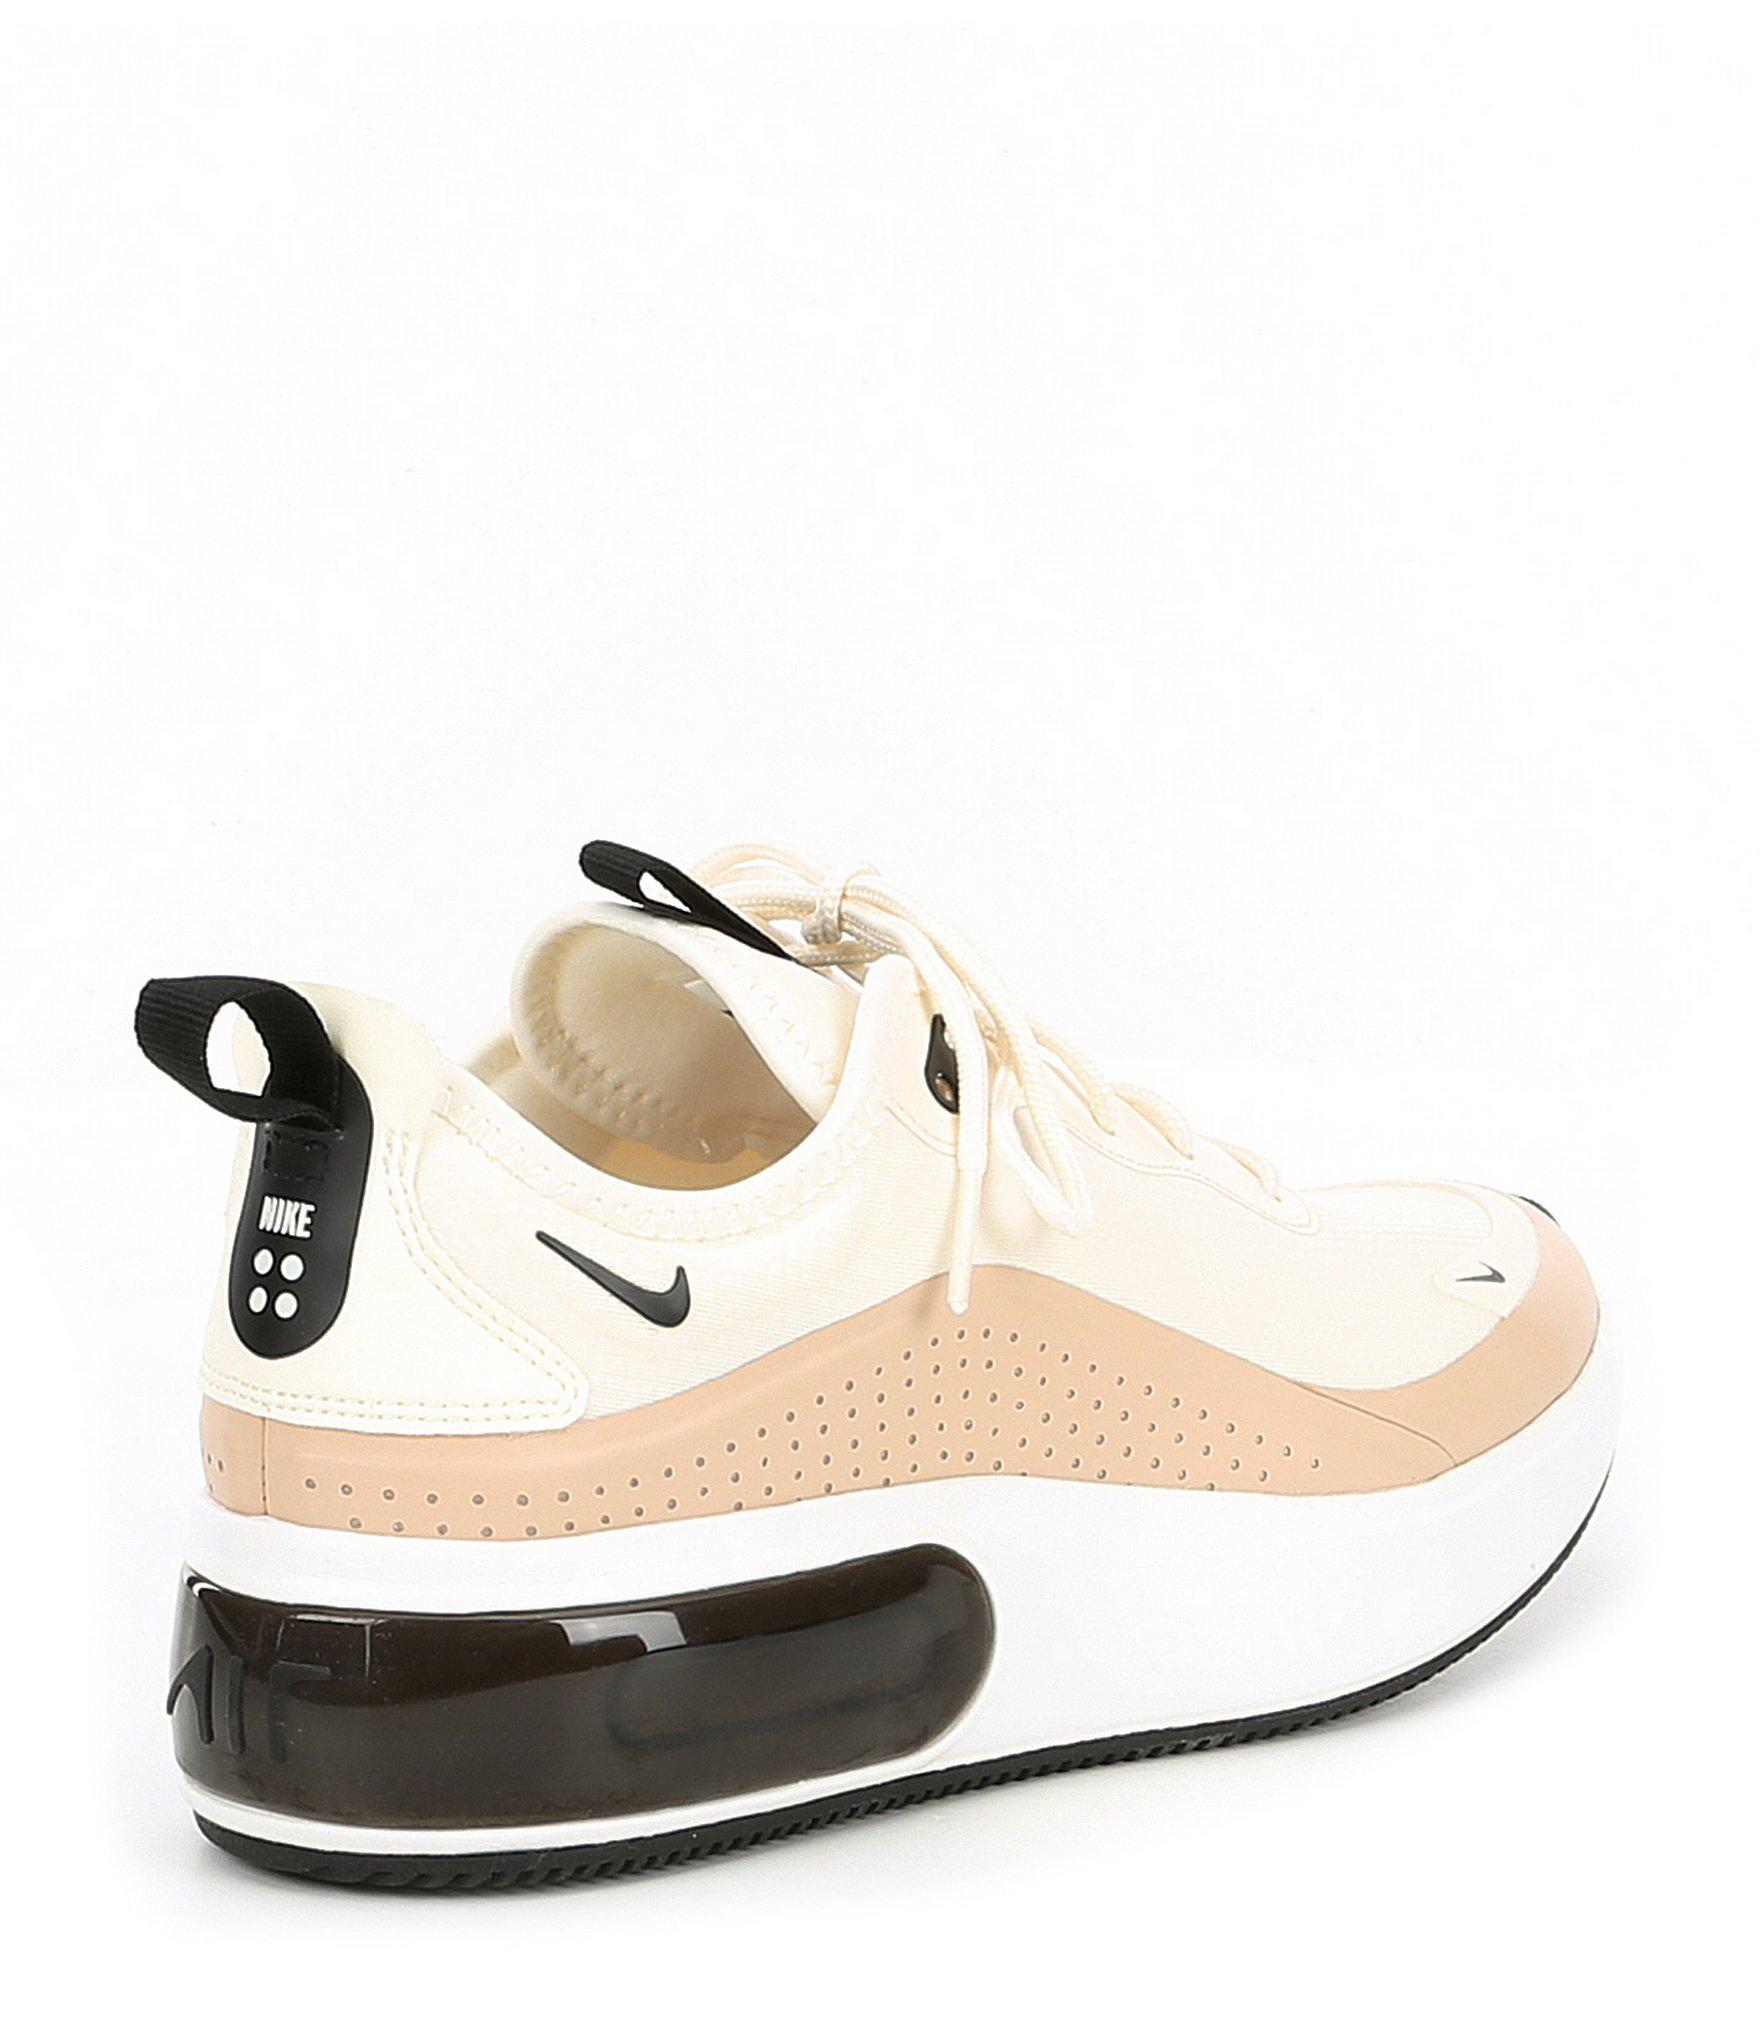 separation shoes 9b8d1 5e422 Nike Women s Air Max Dia Lifestyle Shoe in White - Lyst